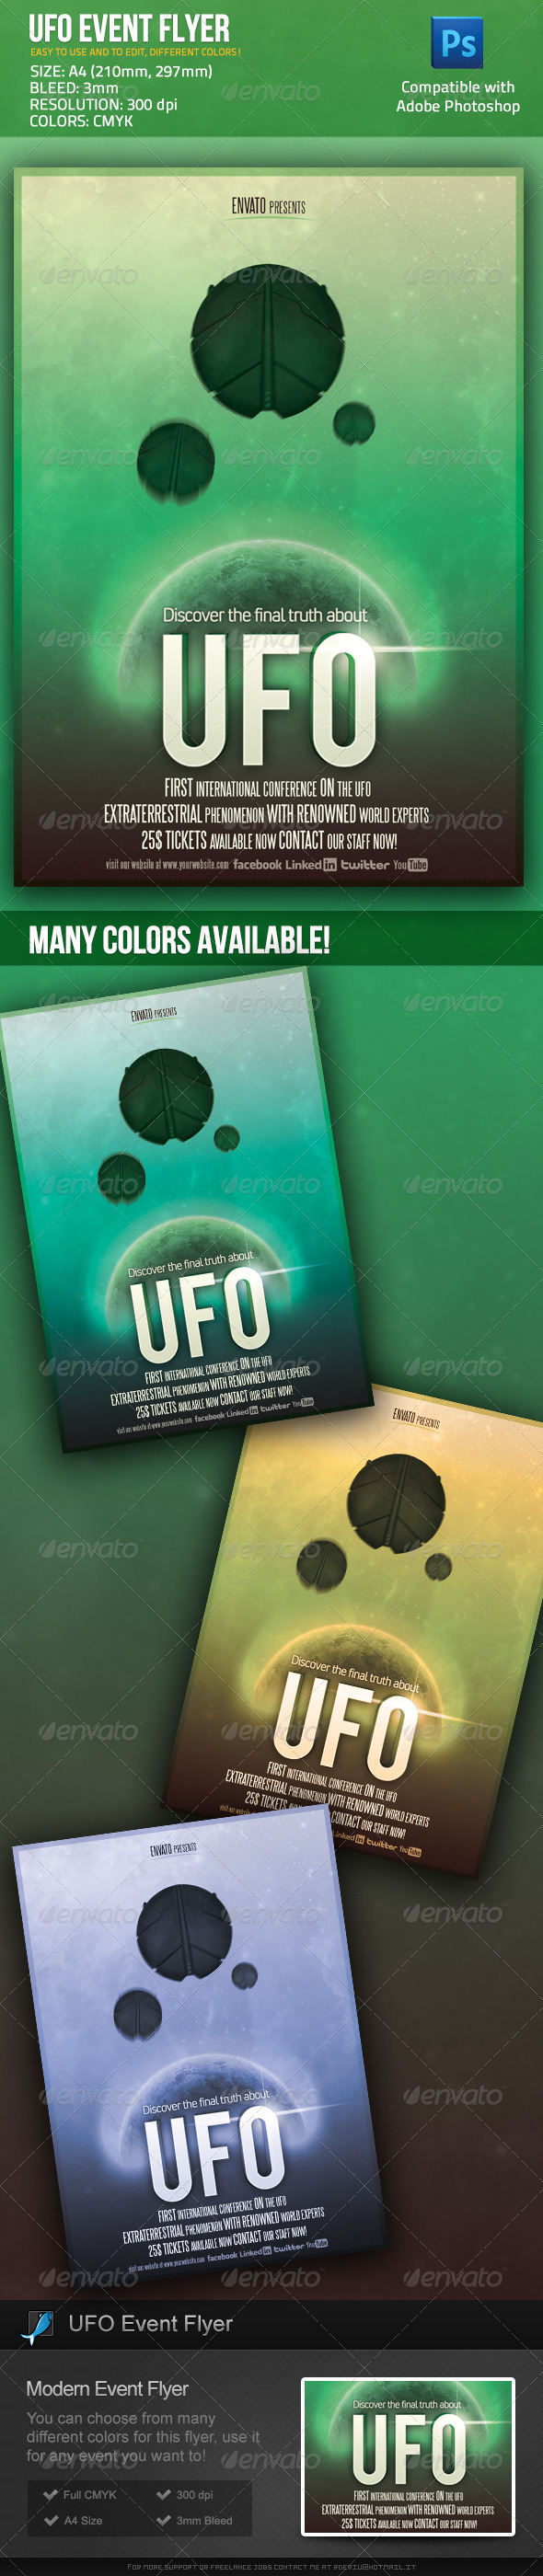 GraphicRiver UFO Event Sci Fi Movie Poster Flyer 2703524